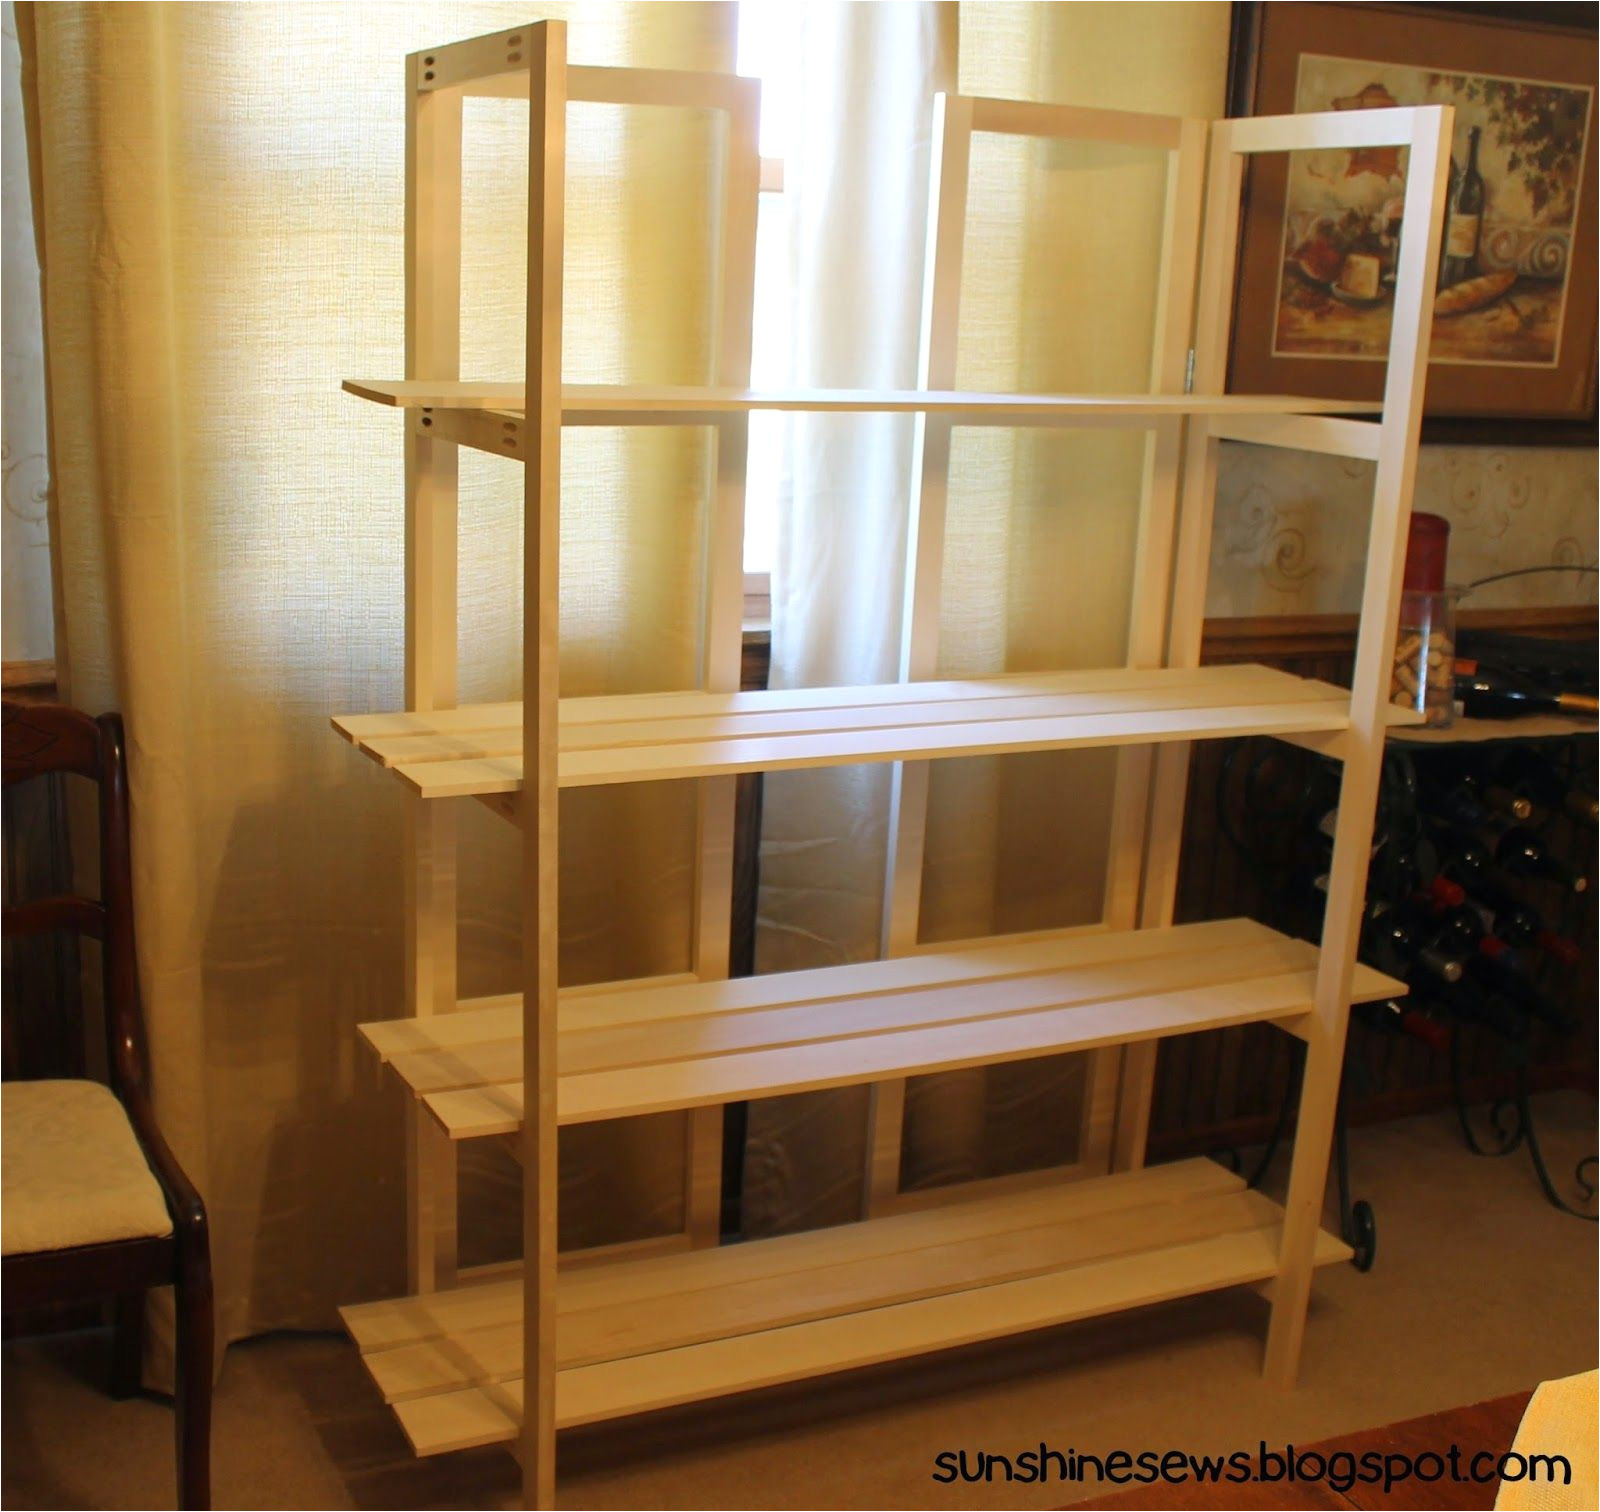 Portable Display Shelves for Craft Shows Diy Diy Booth Display Shelves Google Search Diy Pipe Pallet